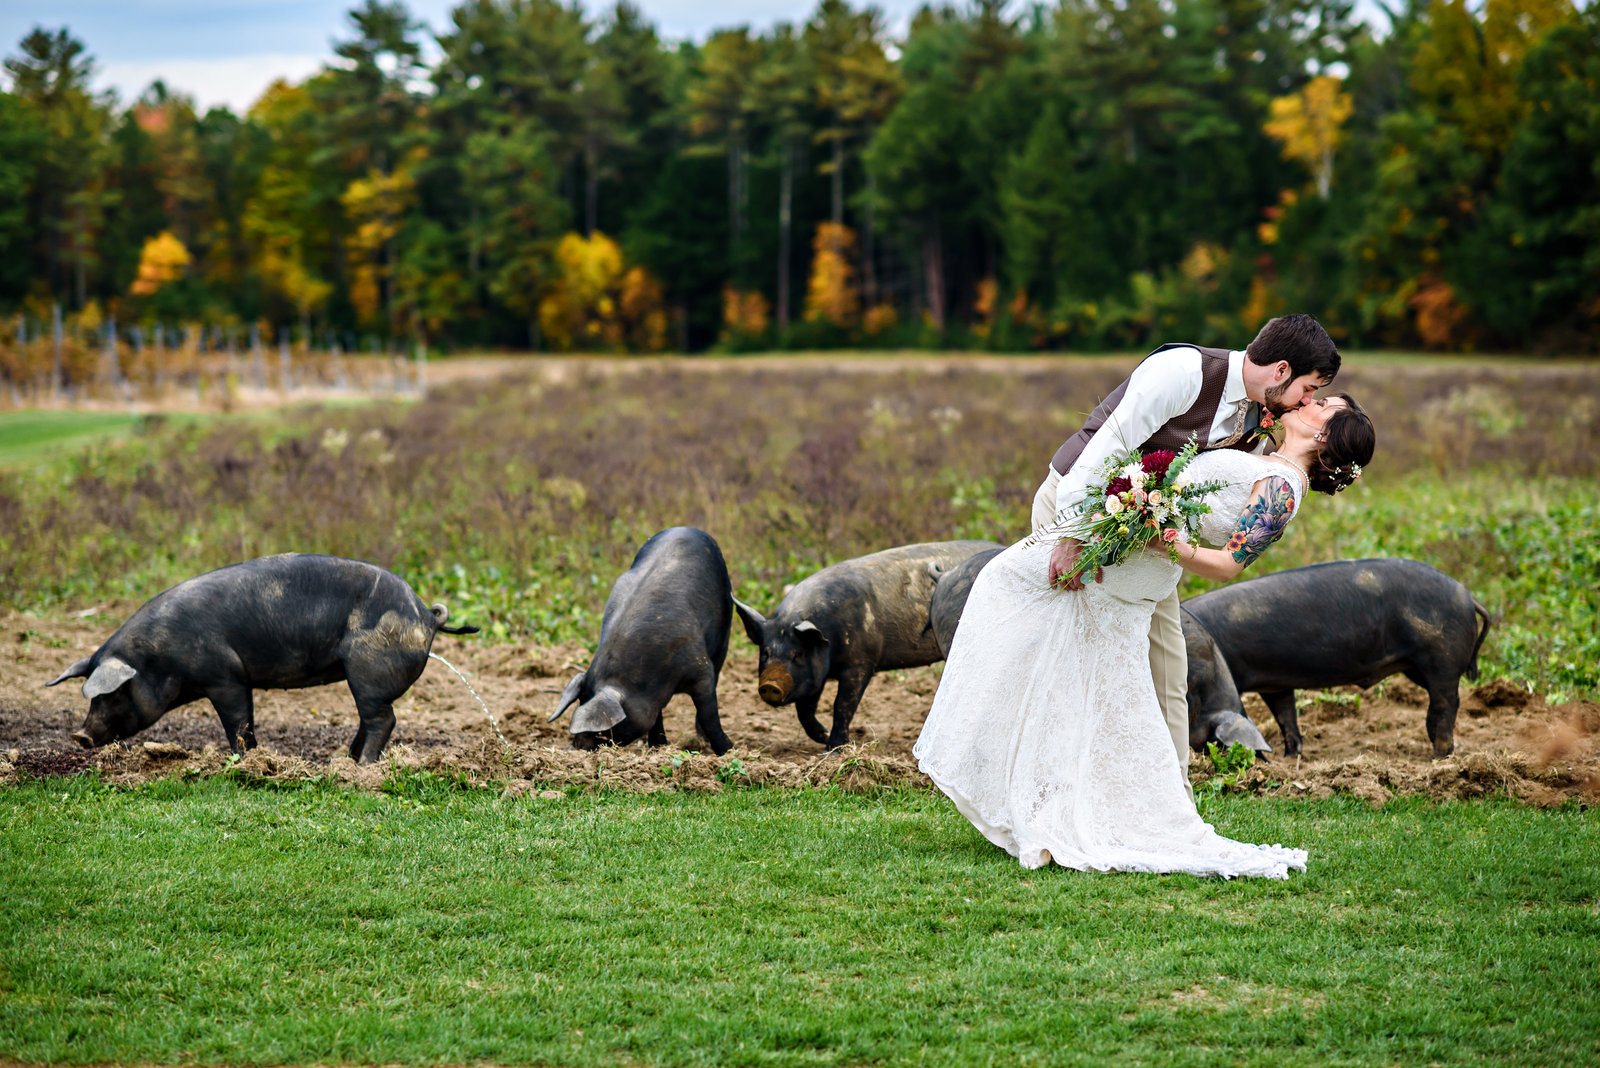 A groom kisses his bride in front of the pigs at this rustic farm wedding.